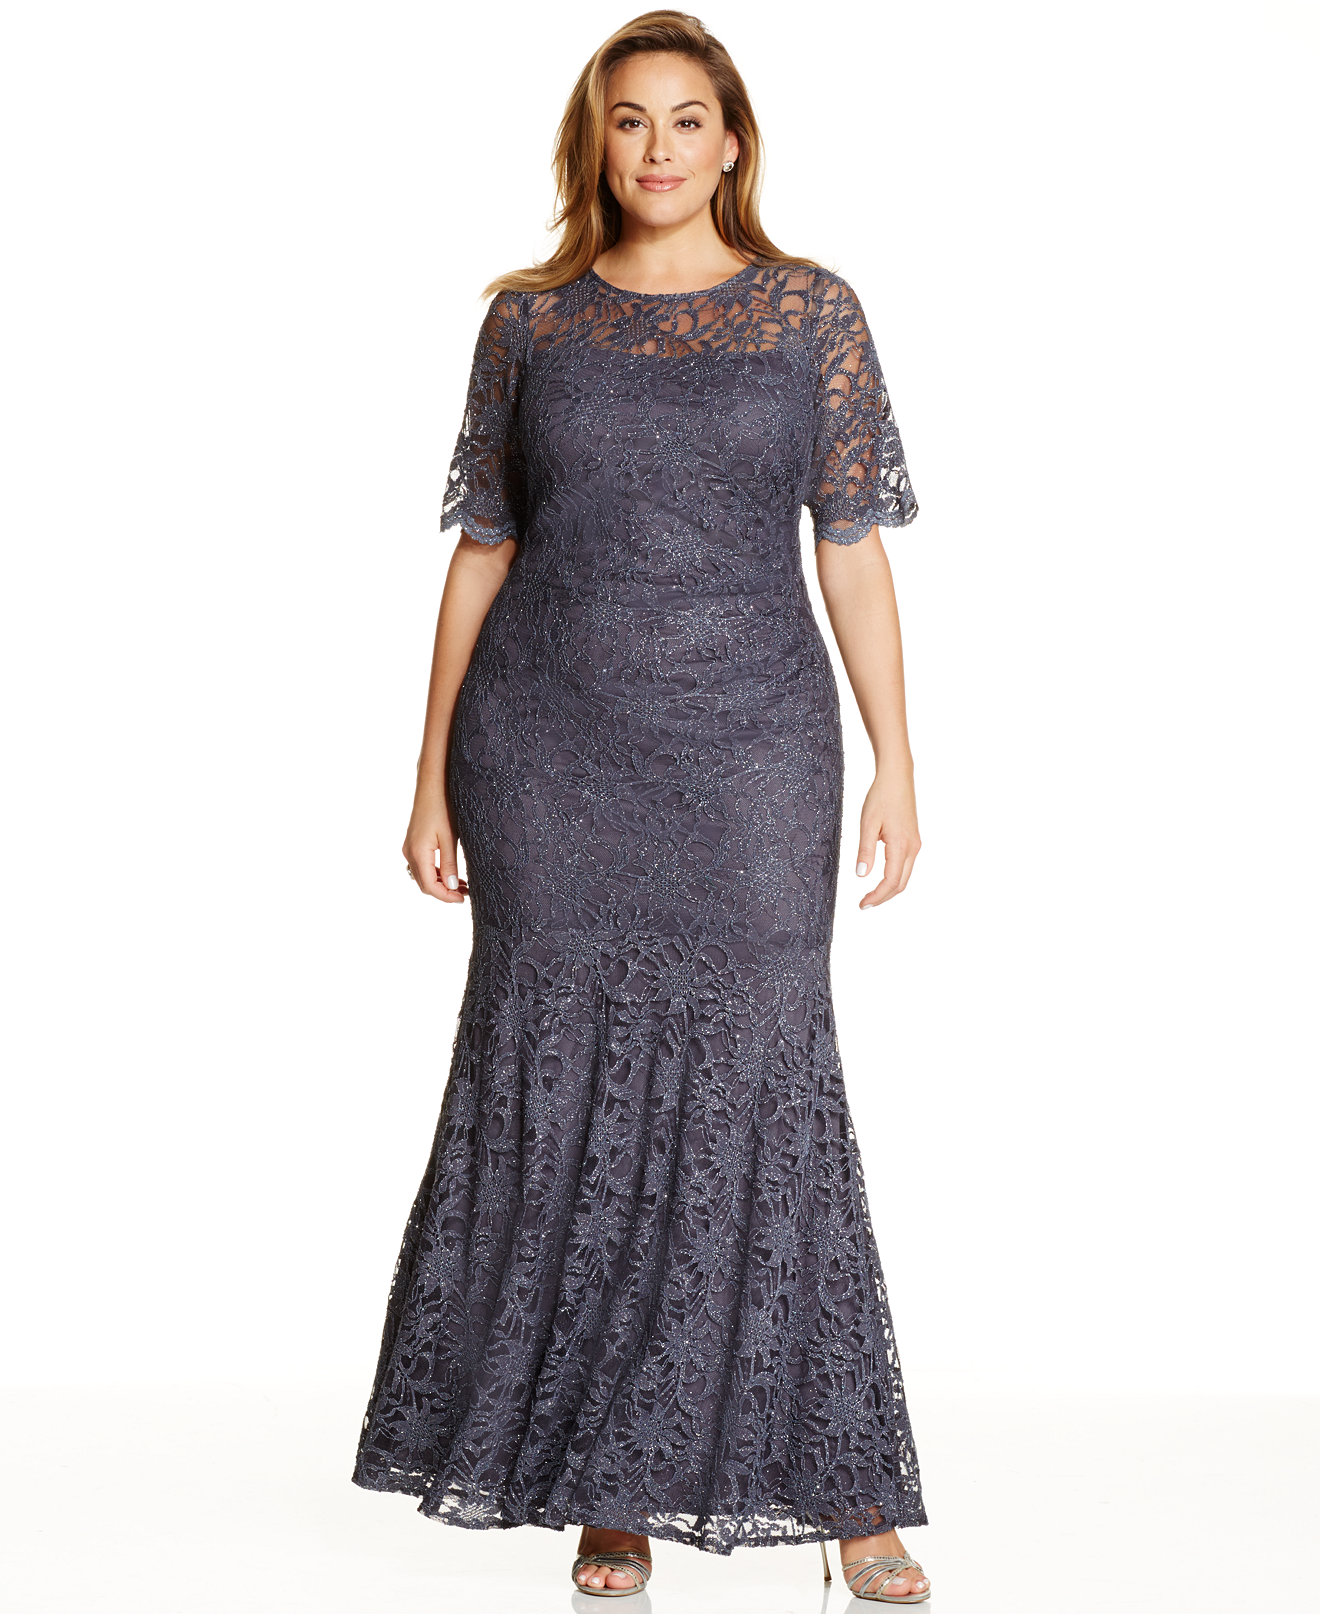 Plus Size Dresses Patterns Special Occasions